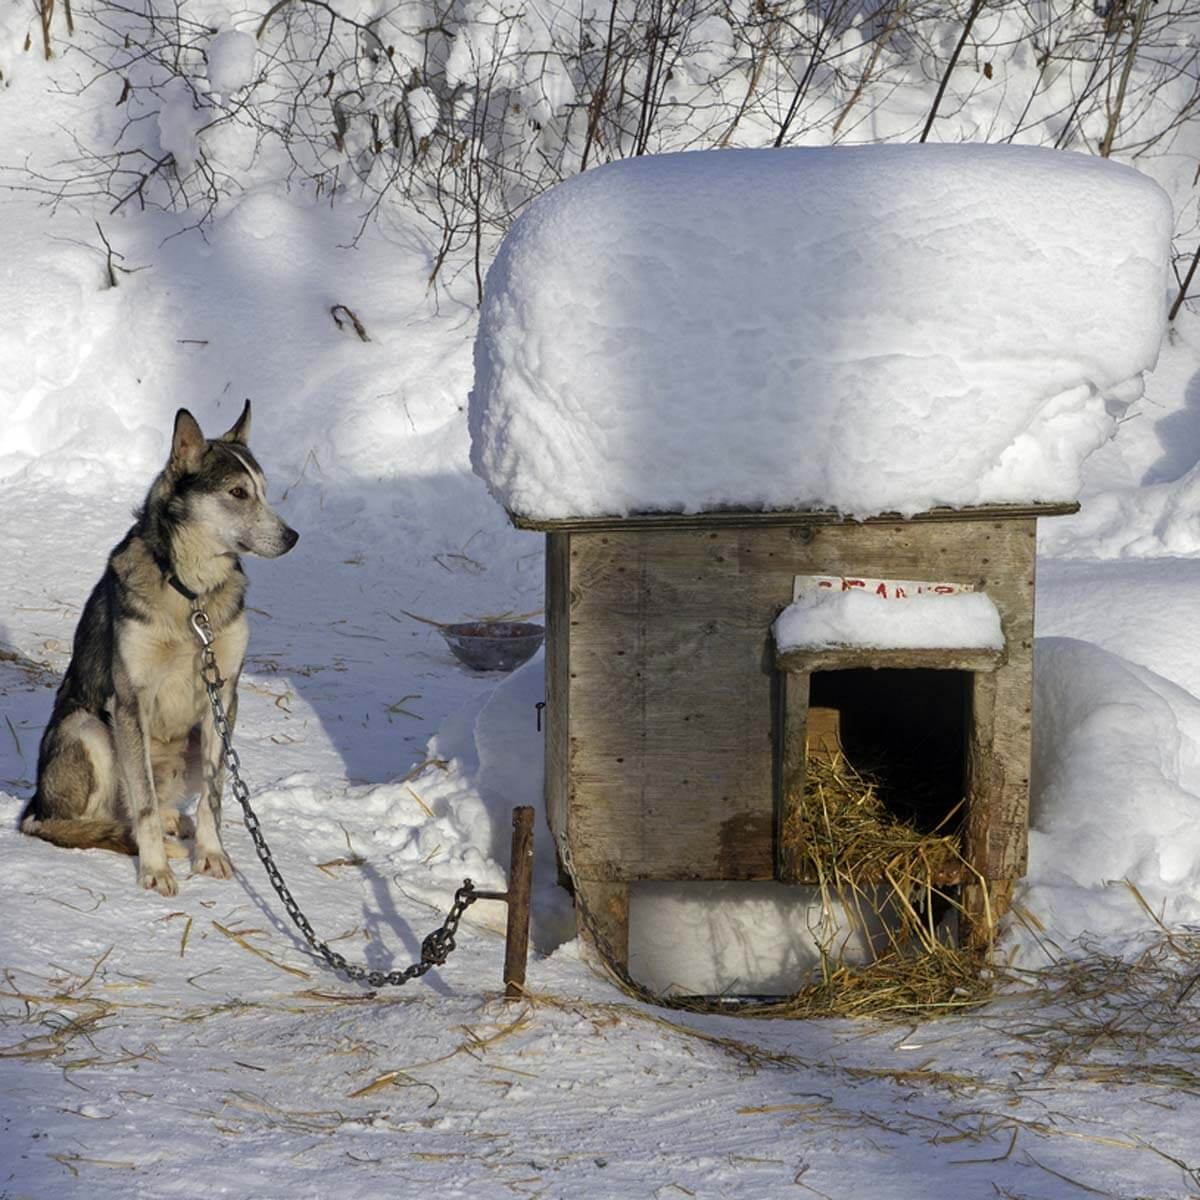 Leaving Dogs Outside In Cold Weather Might Lead To Animal